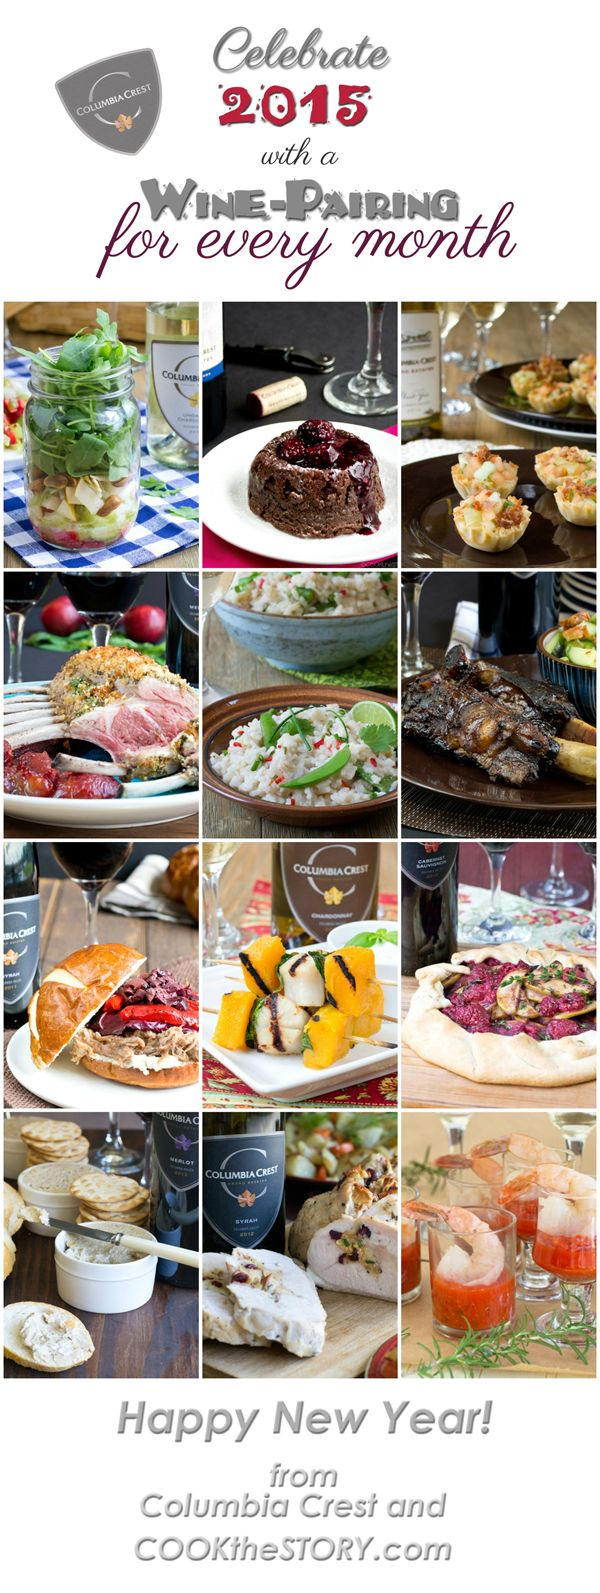 Best 25 wine dinner ideas on pinterest charcuterie tray recipe a wine pairing for every month forumfinder Gallery